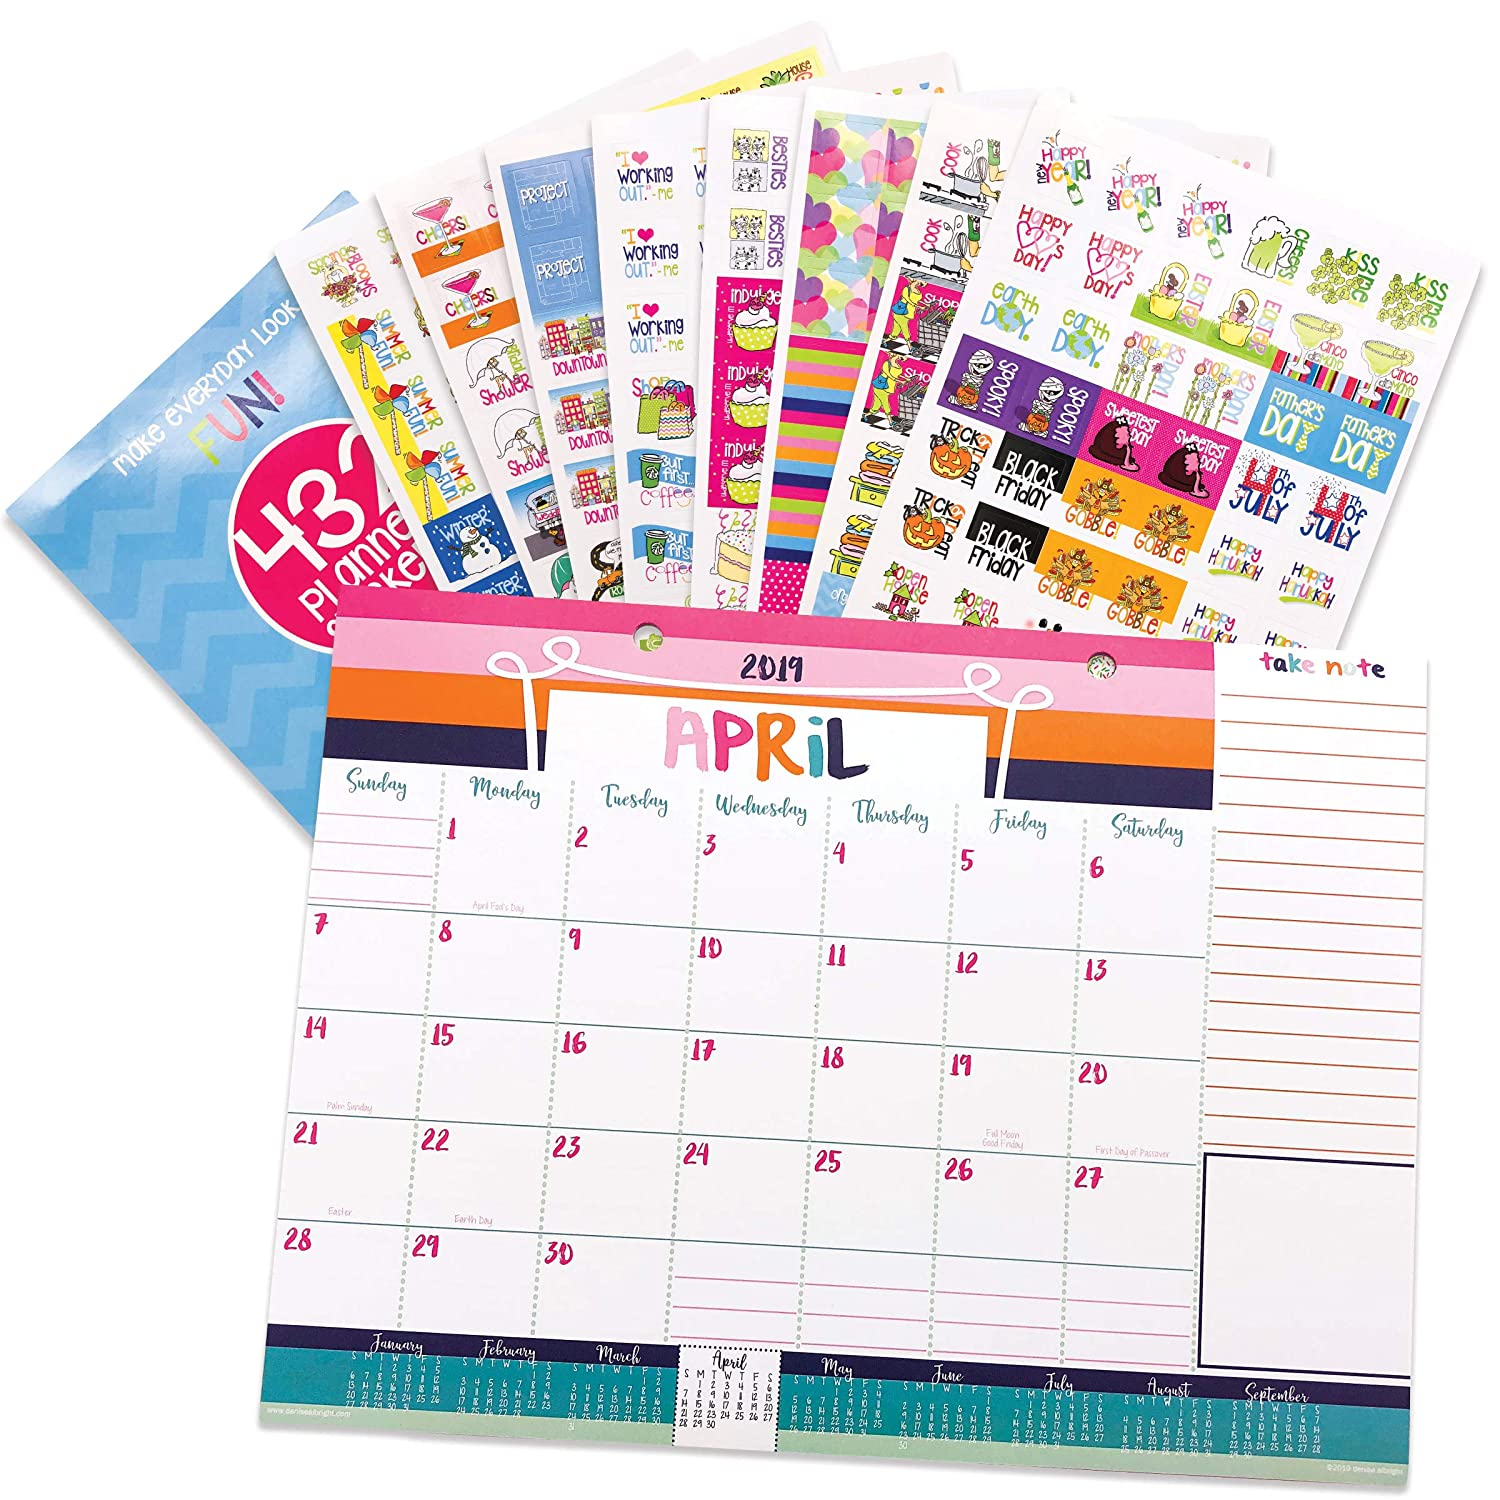 Gift Ideas 16 Year Old Brother Hanukkah 2020 Amazon.: 2019 2020 Monthly Desk Calendar 18 Month + Event